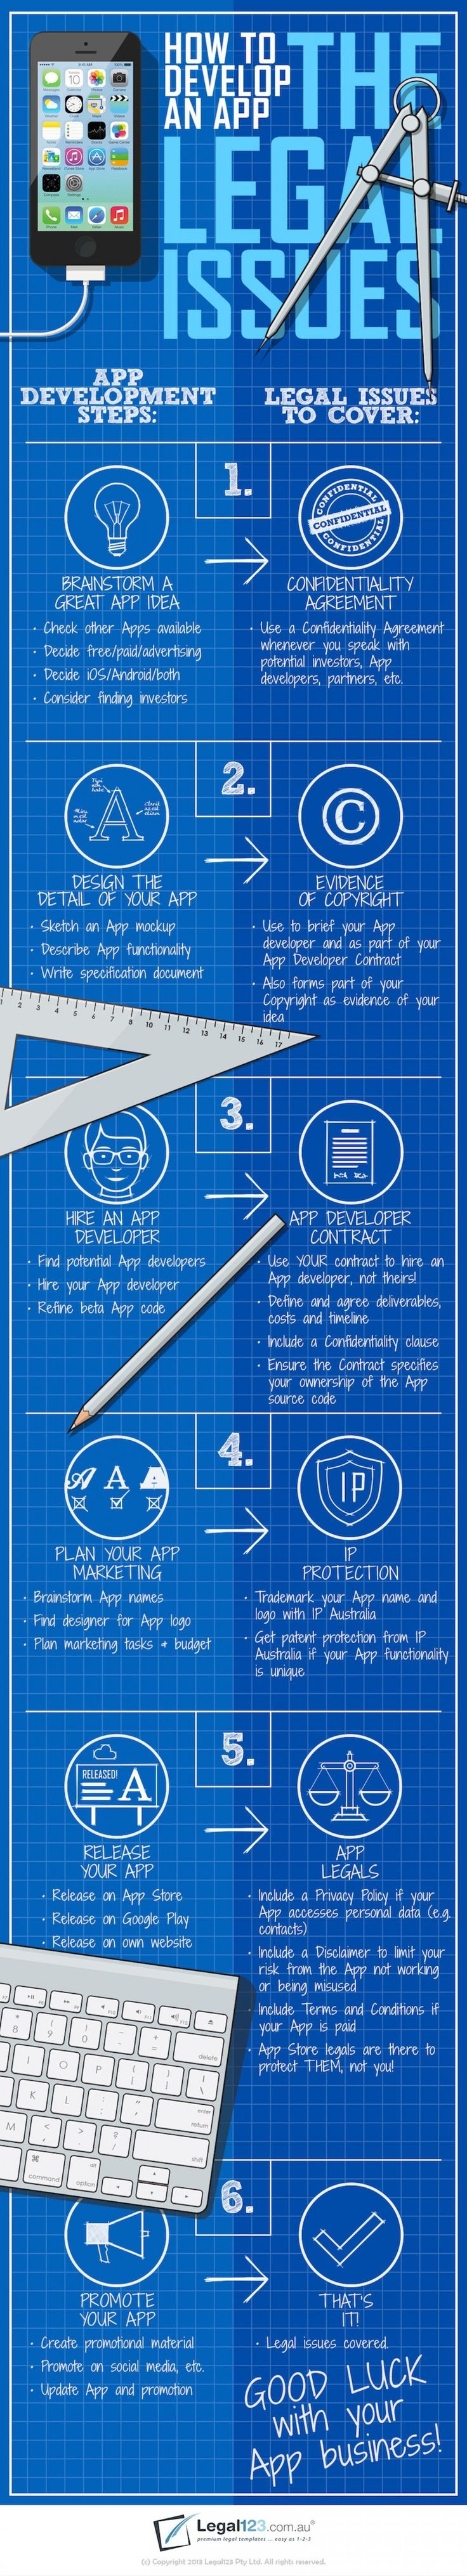 How to Develop an App: The Legal Issues Infographic